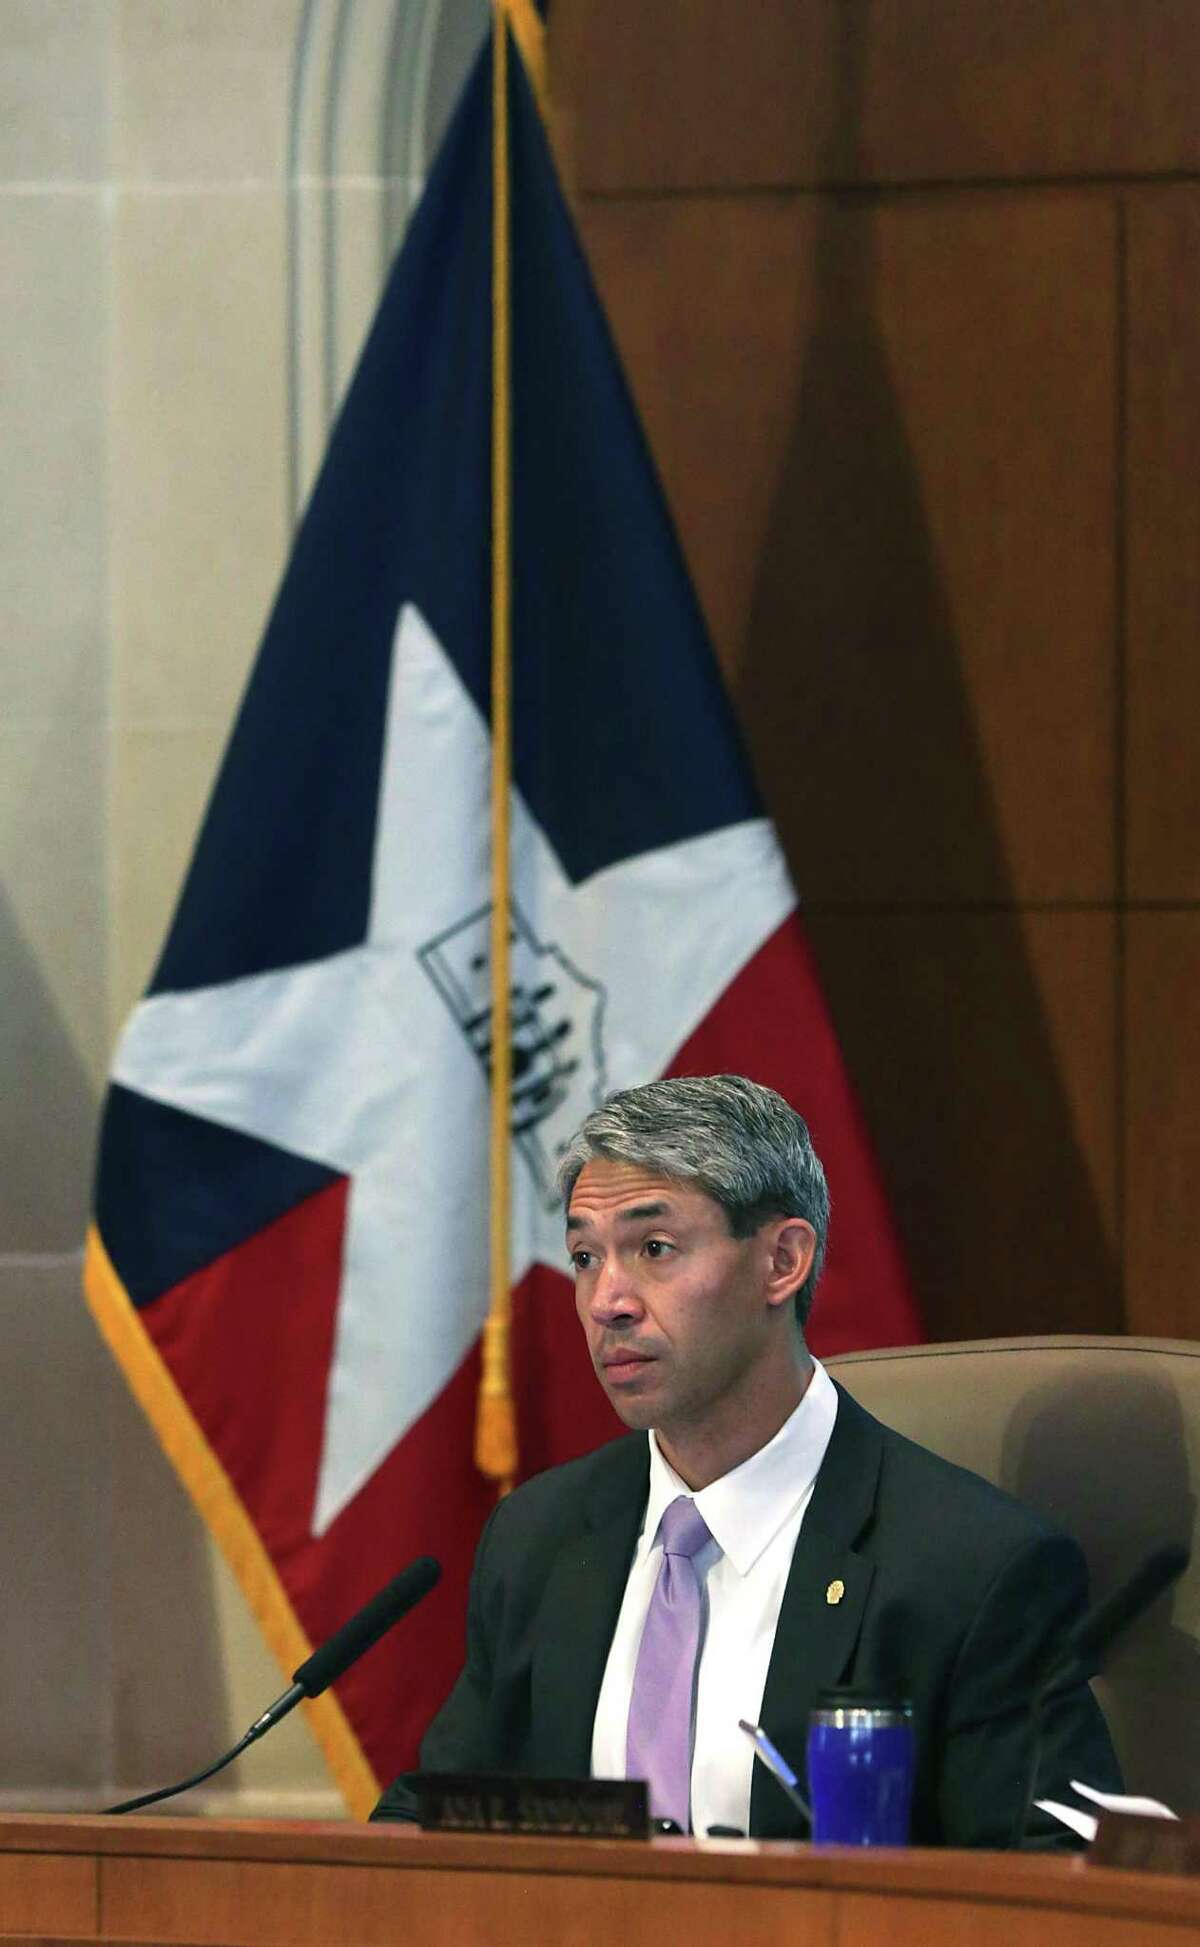 Mayor elect Ron Nirenberg attends his last council meeting as a councilman, in the Municipal Complex on Wednesday, June 14, 2017.